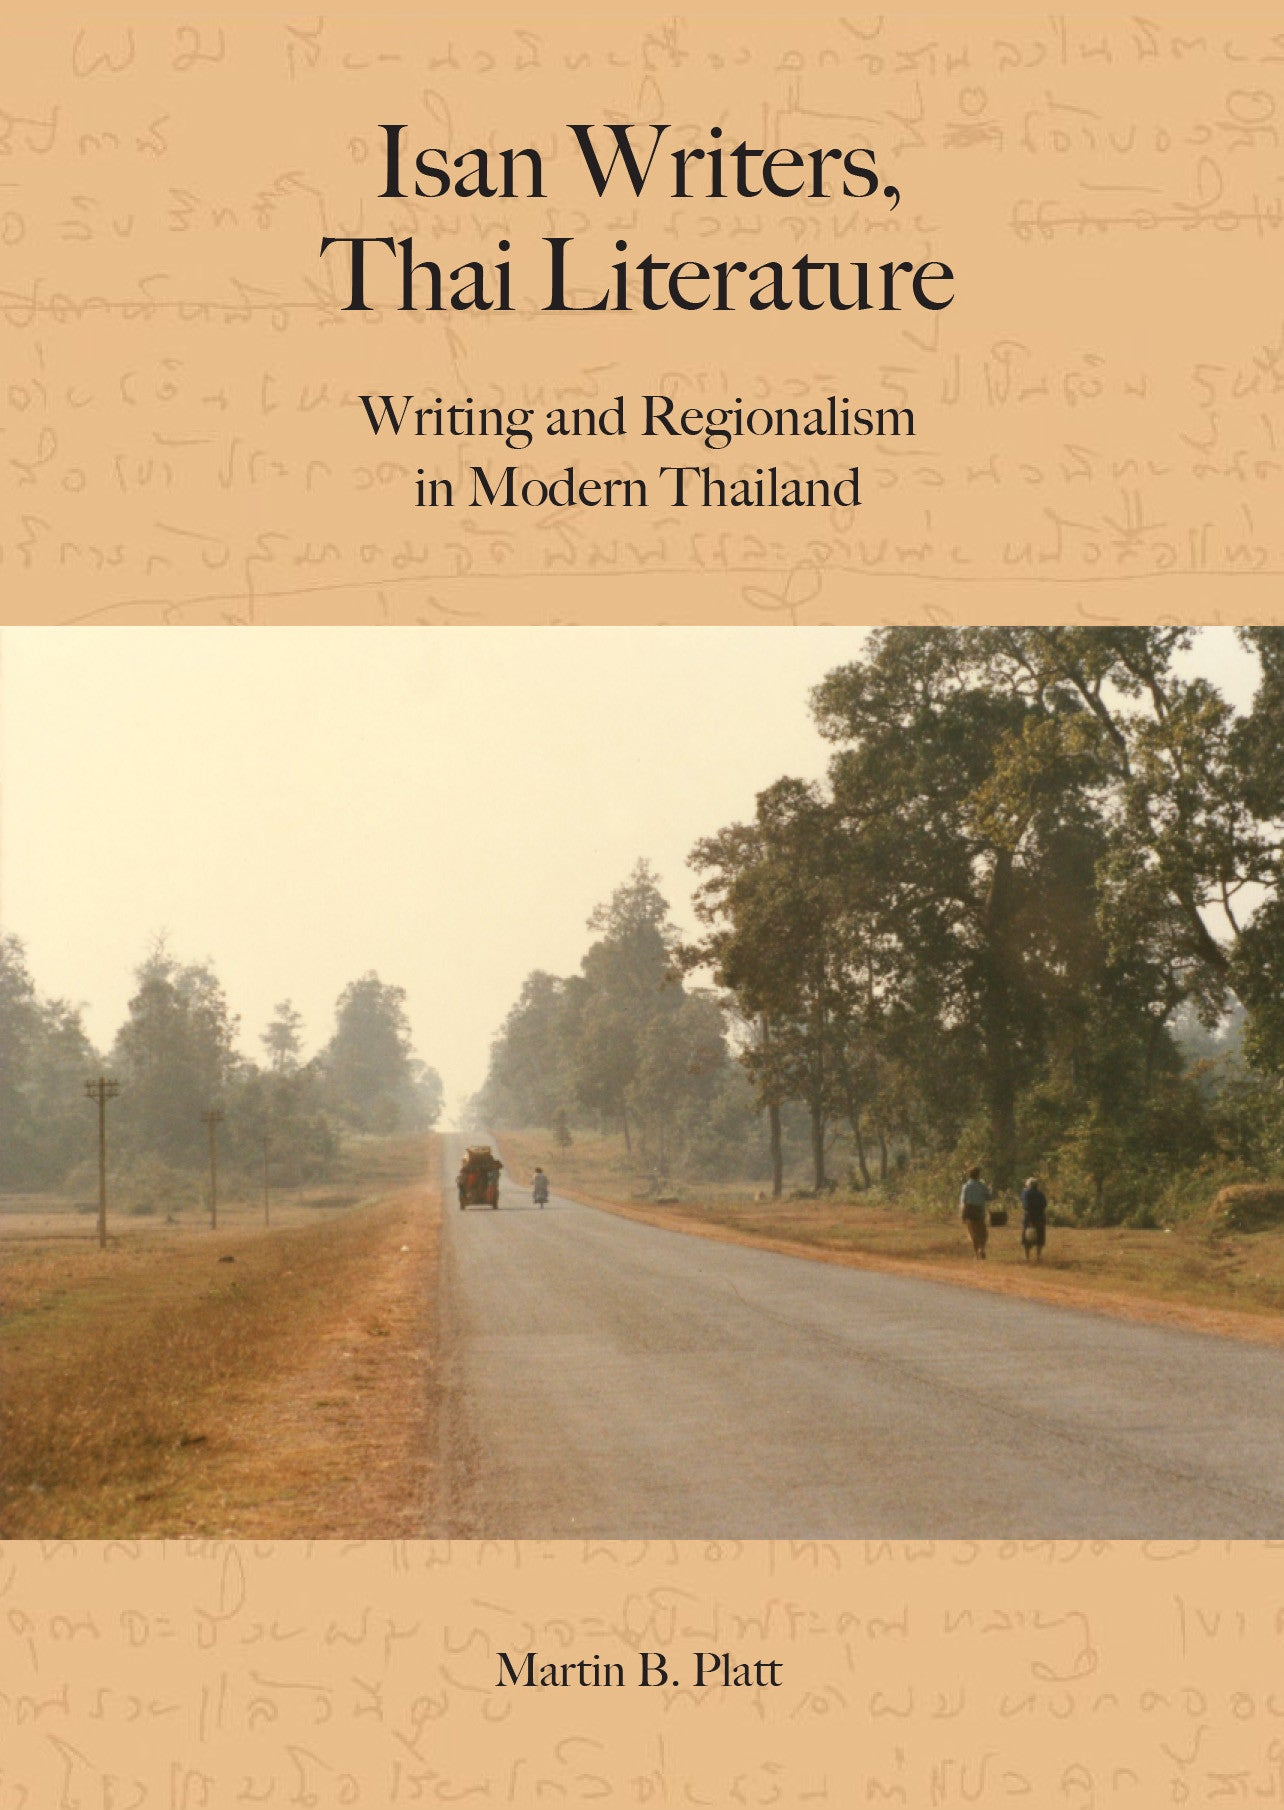 Isan Writers, Thai Literature: Writing and Regionalism in Modern Thailand